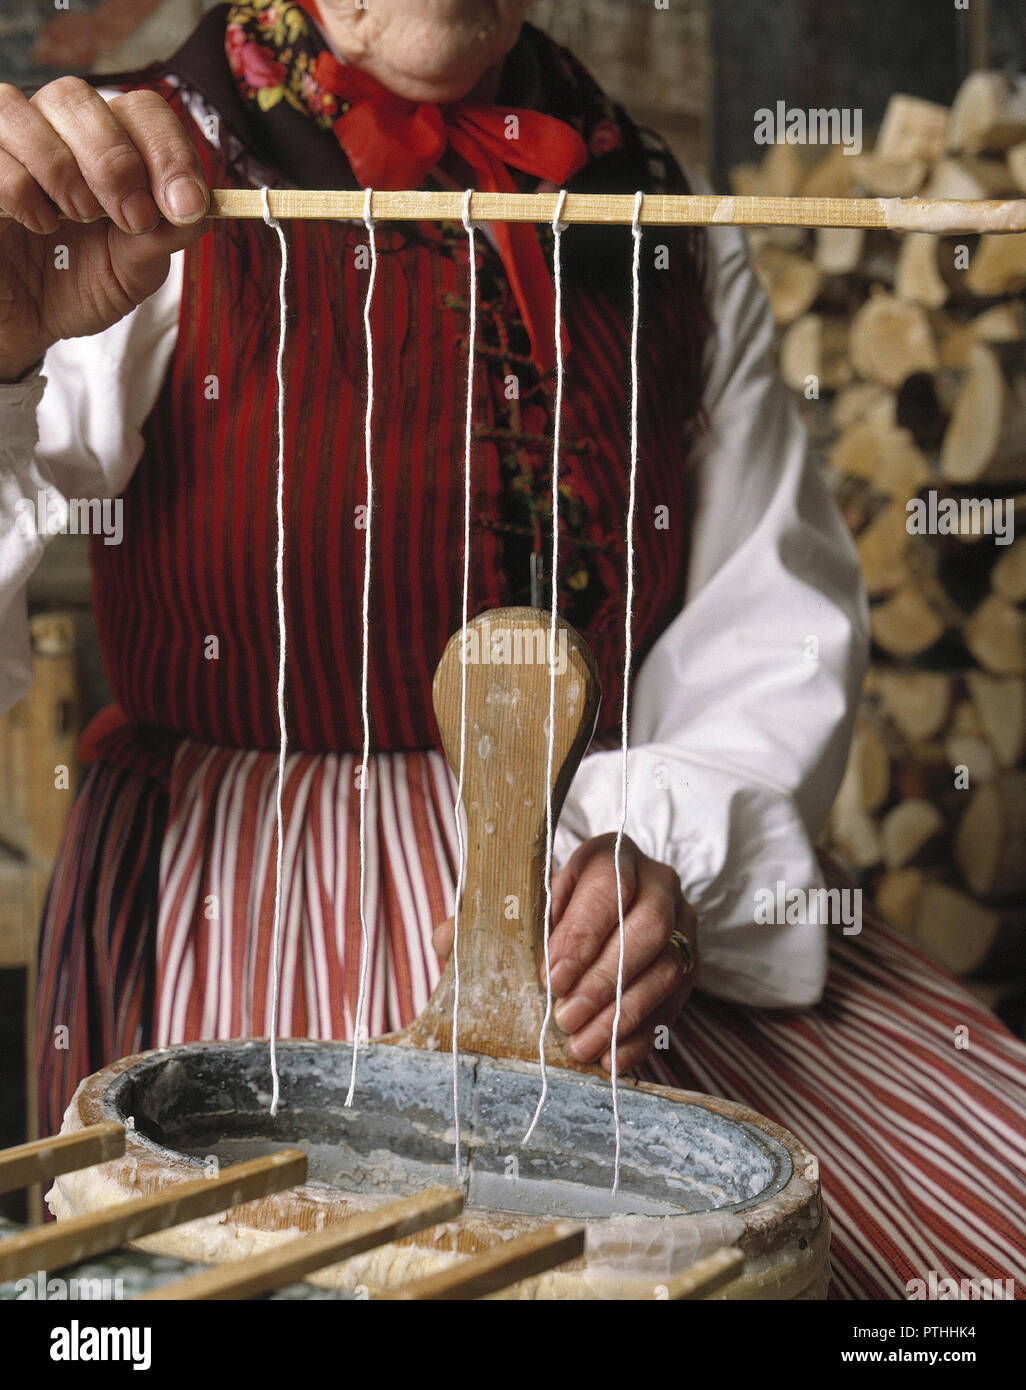 Making candles. A woman dressed in traditional Swedish folk costume are making candles. She dips the candlewicks into the liquid stearin many times, and add layer on layer of stearin onto the candel, until it's ready. - Stock Image